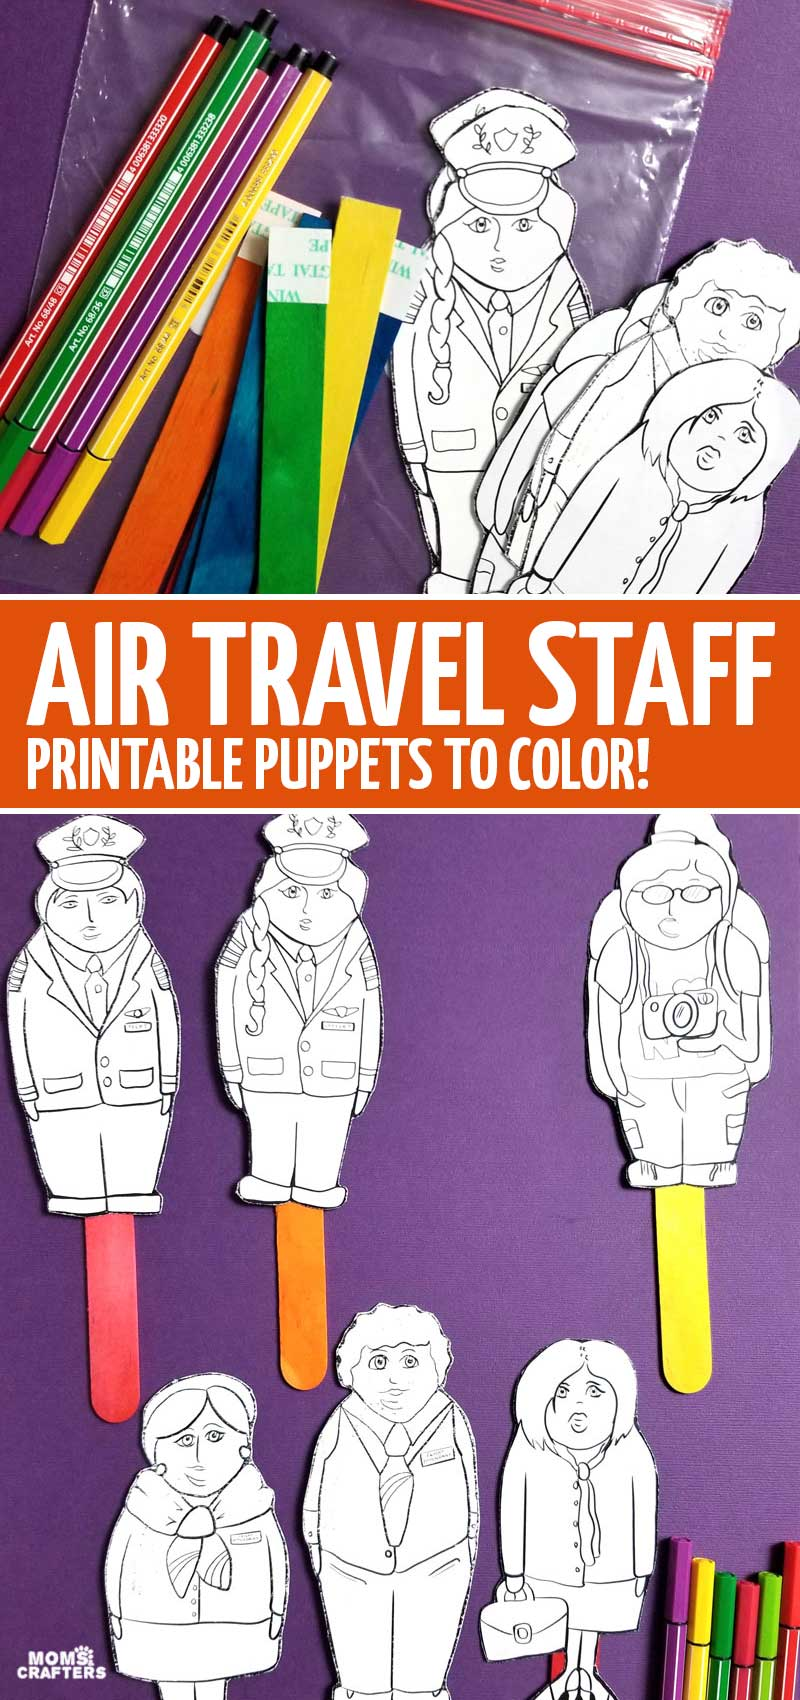 Click for these plane travel puppets - a fun airplane travel activity for toddlers and kids! This fun airplane craft is a fun travel craft for doing on the airplane or in the airport.